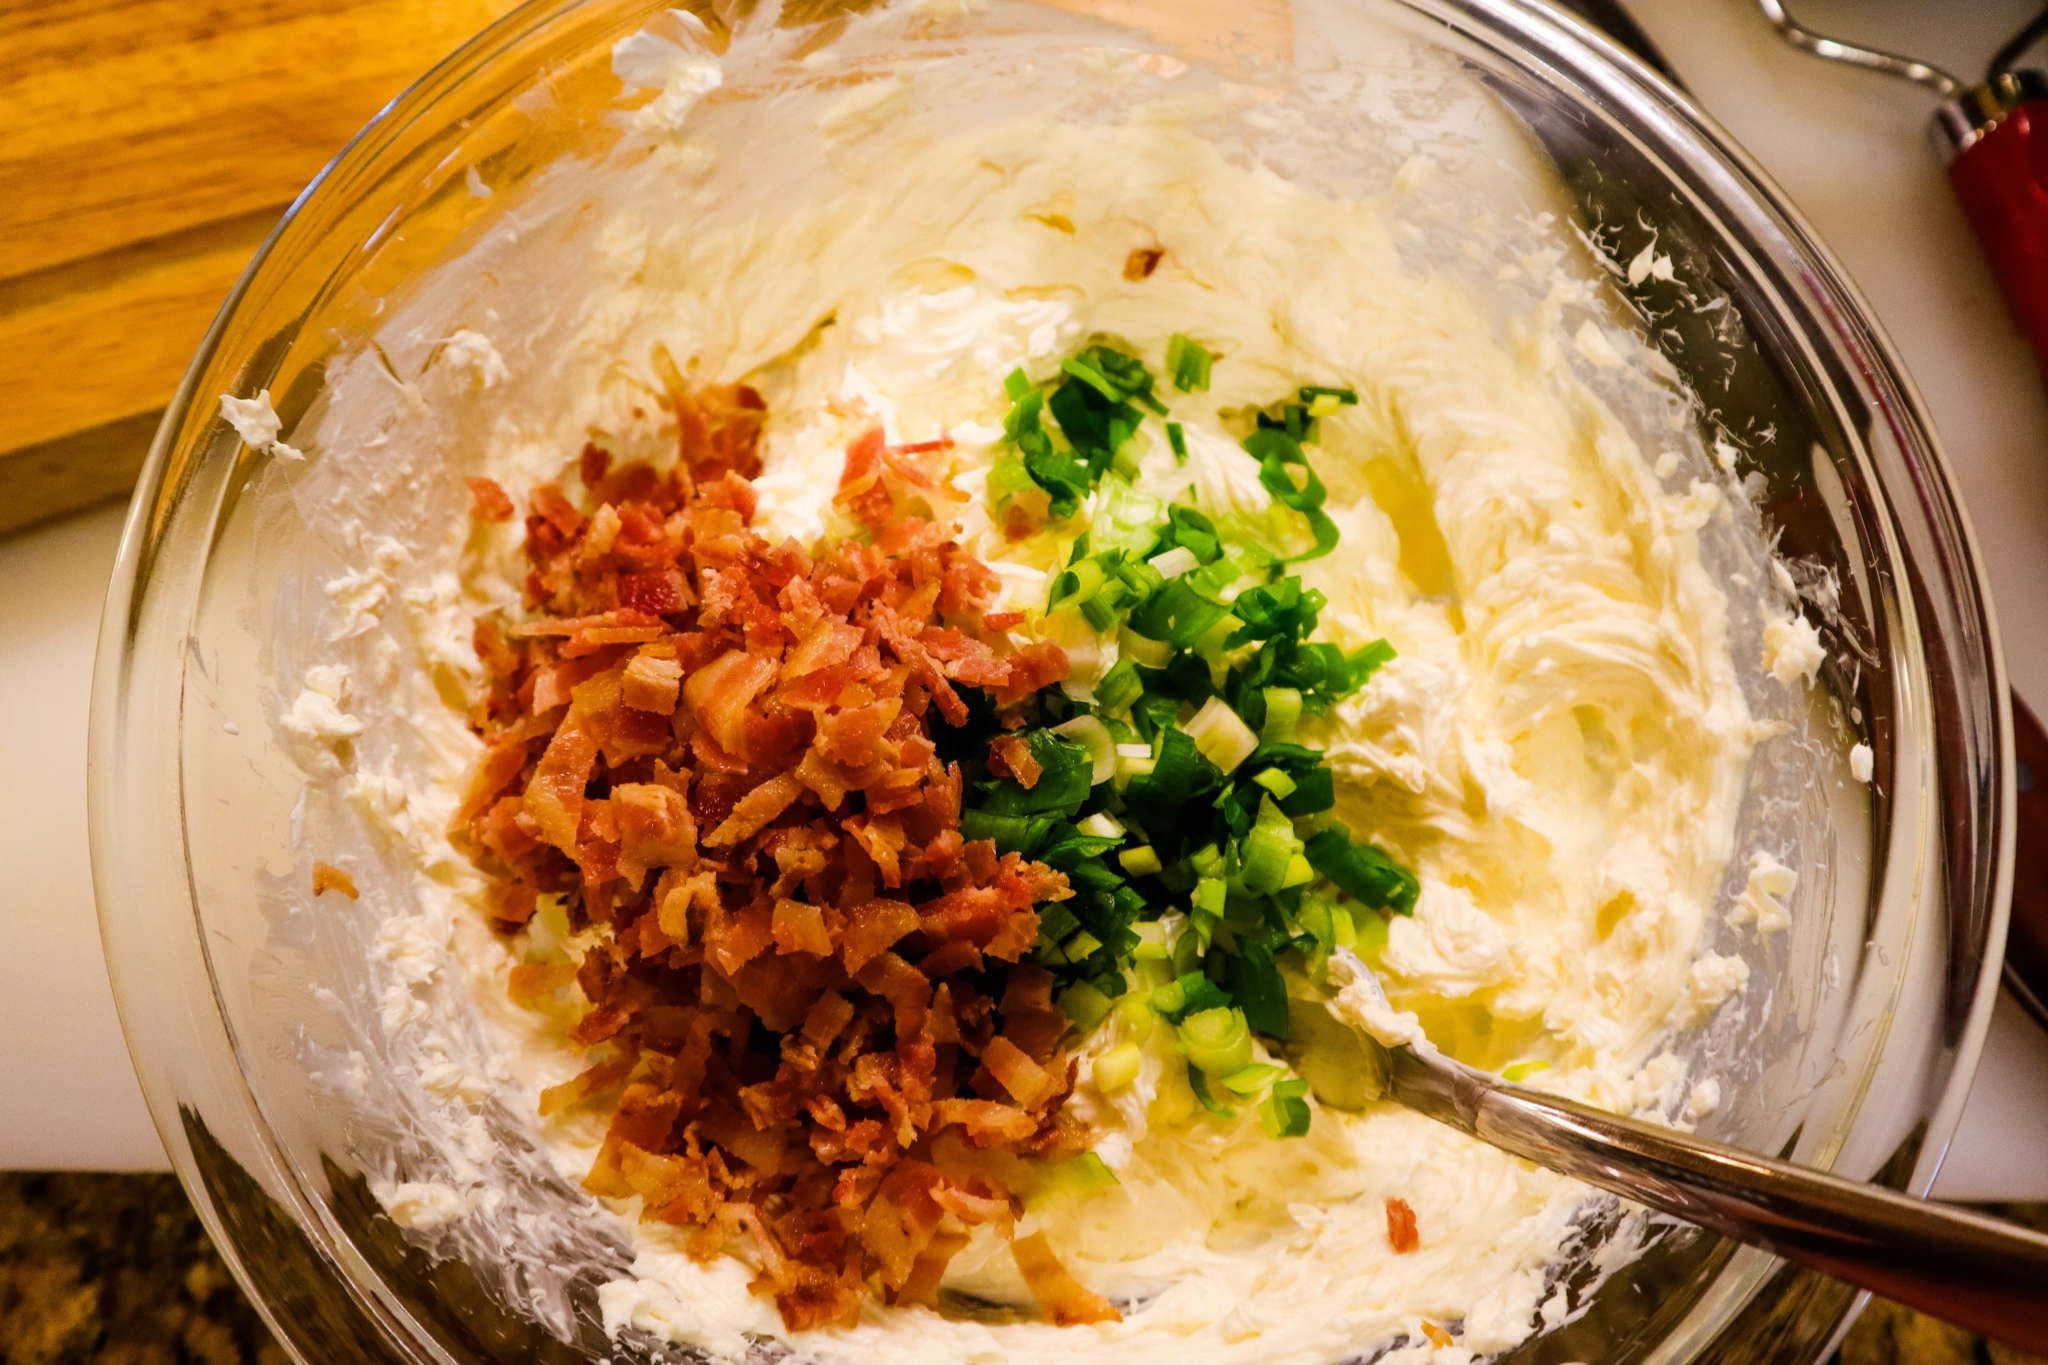 A plate of food with rice, with Cheese and Bacon